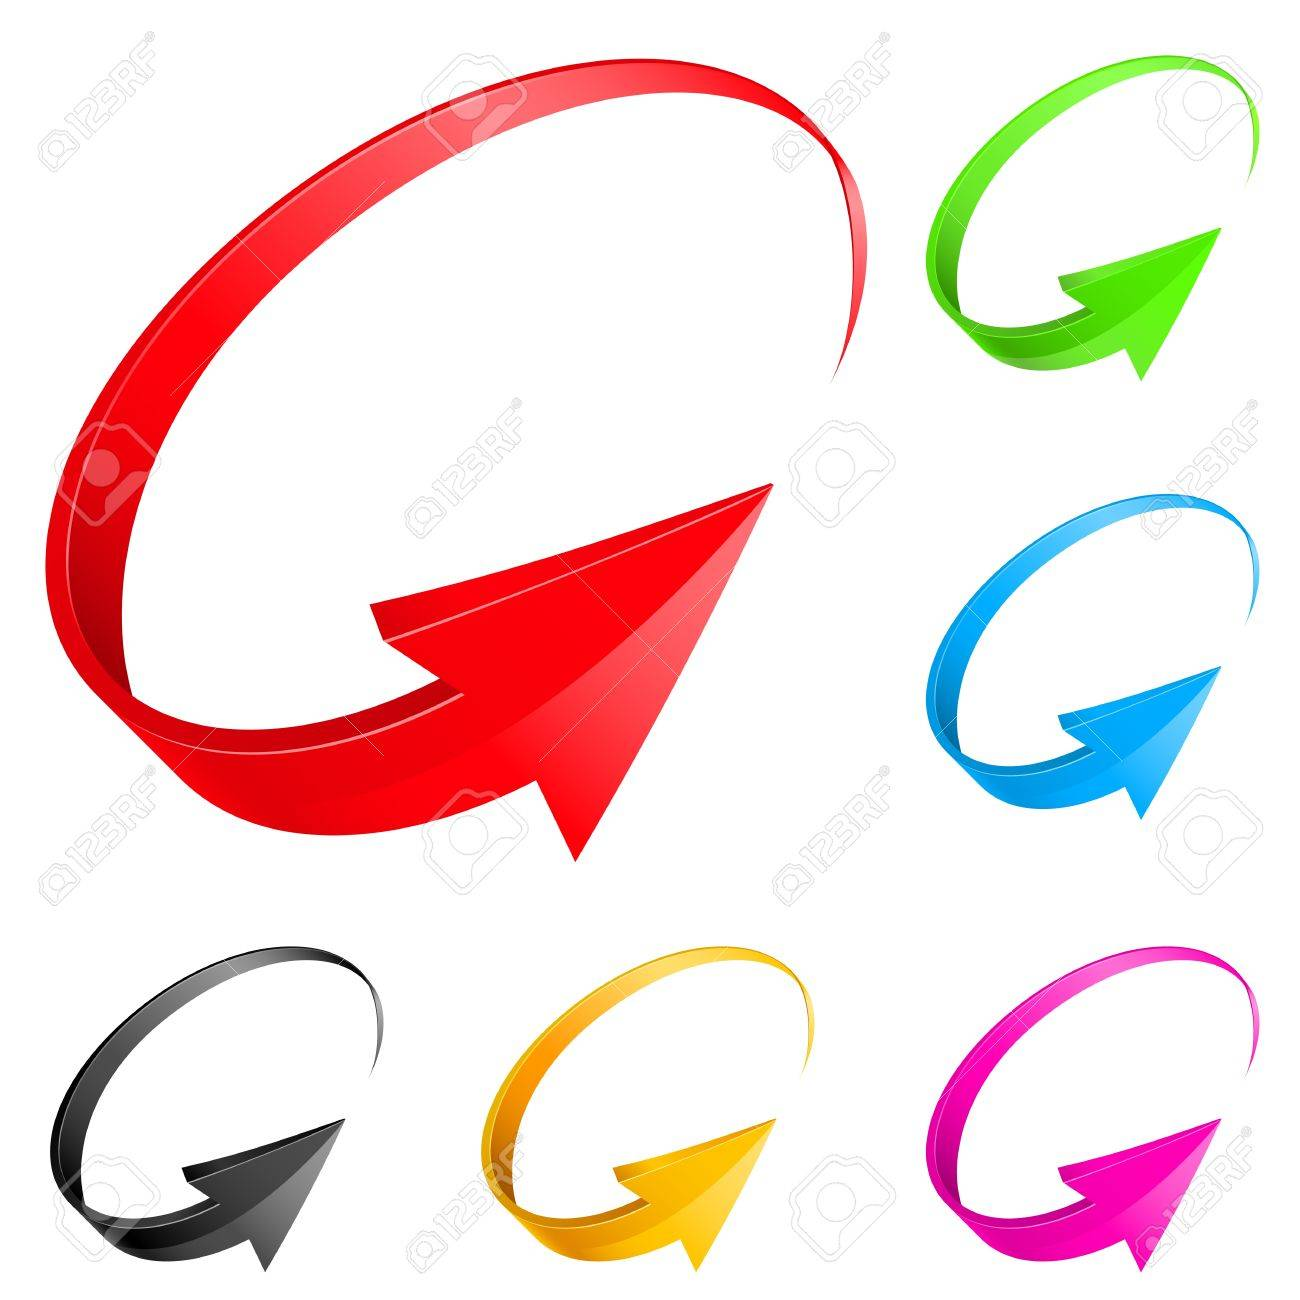 Colorful arrows. Illustration for design on white background Stock Vector - 14331337